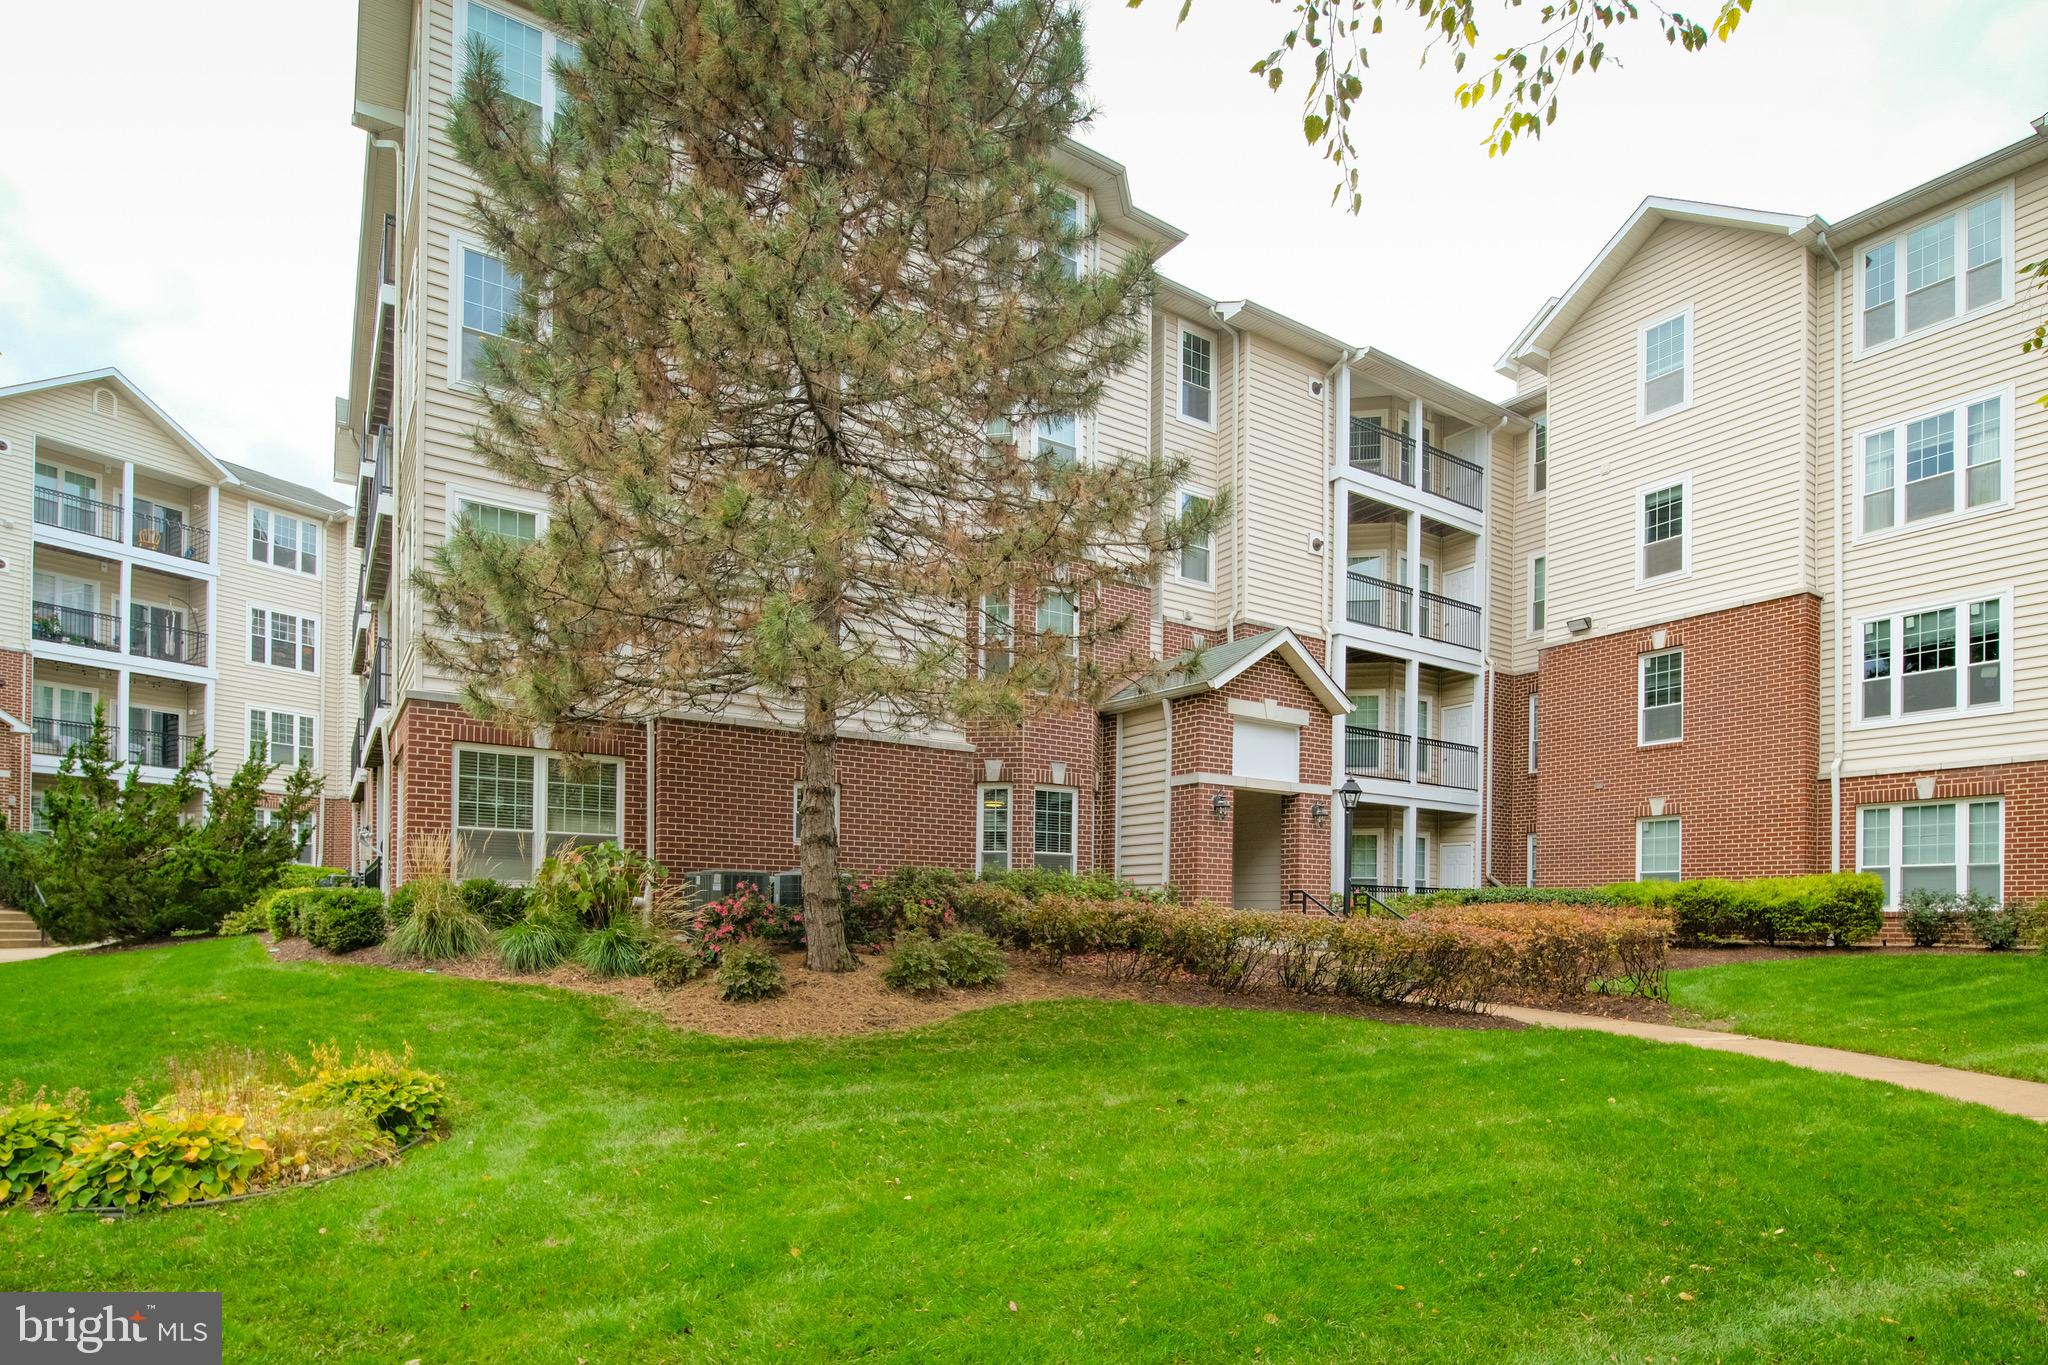 2 bedrooms, 2 full baths condo with beautiful garden view ground floor.Accessible to Mclean Metro, I